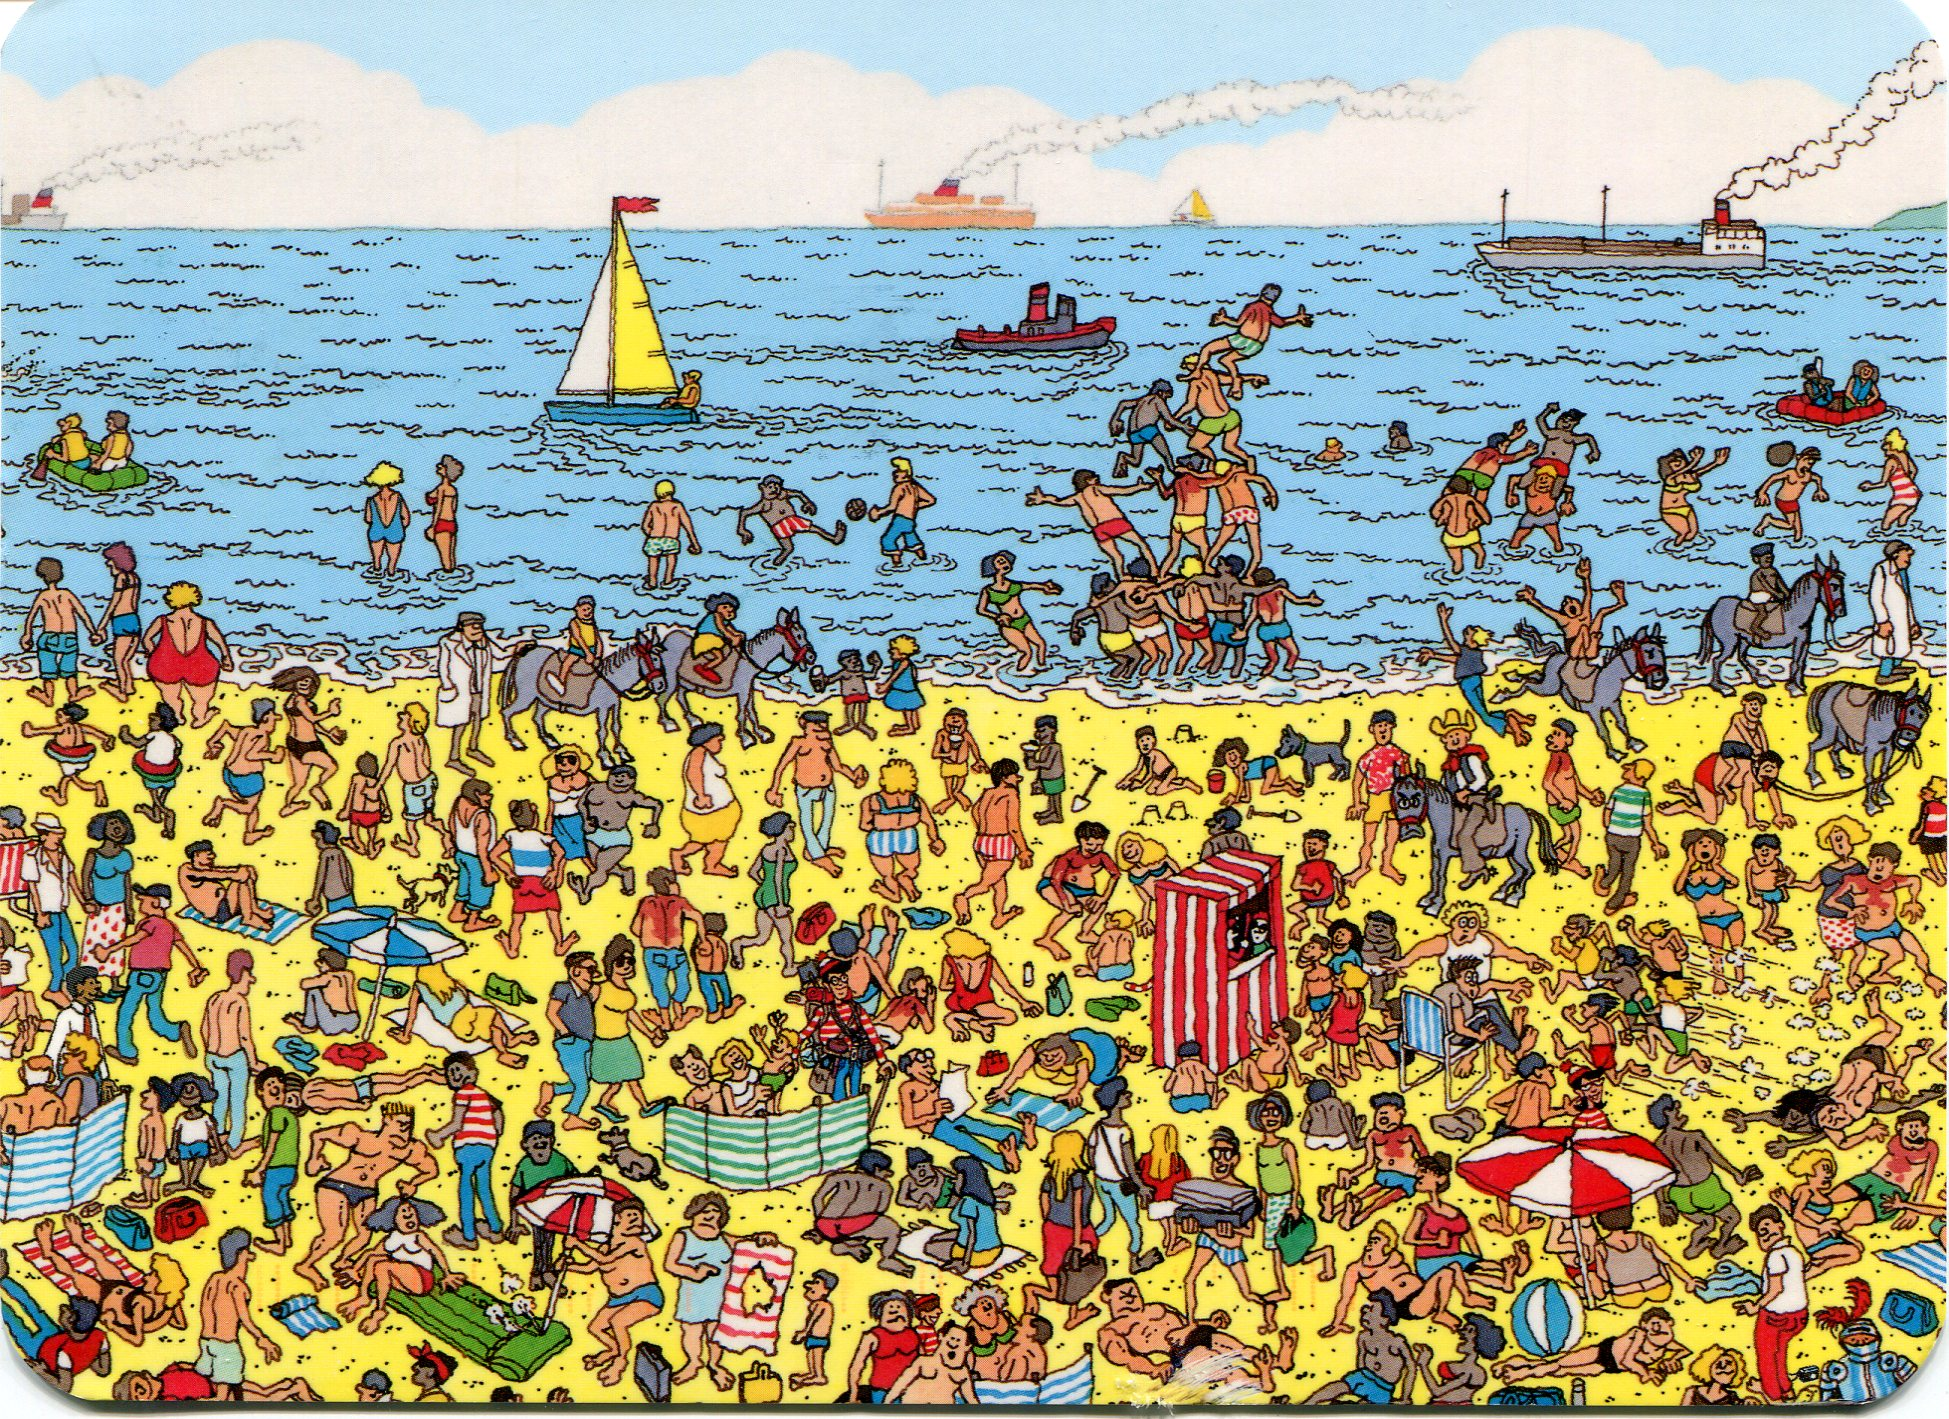 For those who remember, go ahead and try to find Waldo...